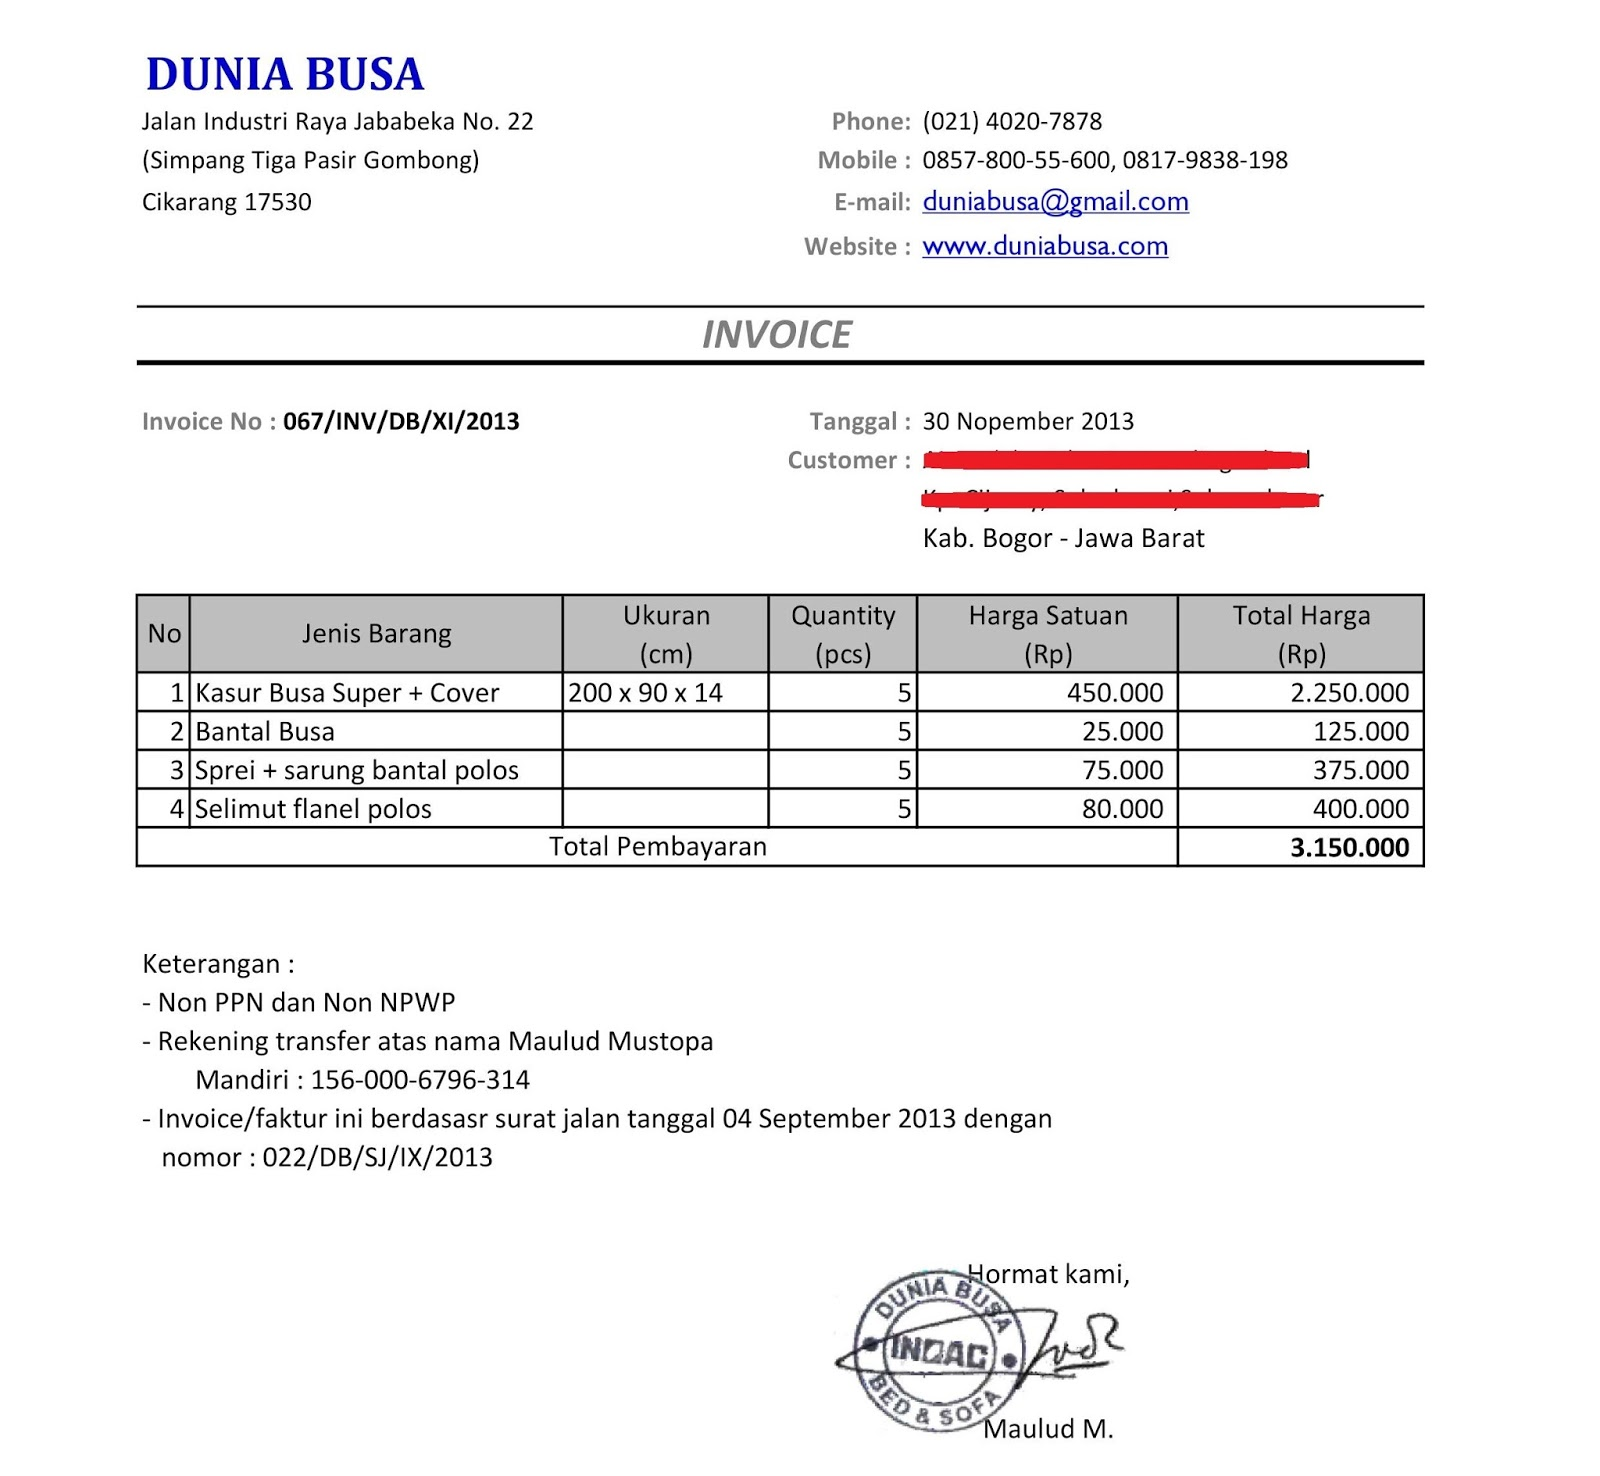 Centralasianshepherdus  Sweet Free Invoice Online  Create Invoice Online  Invoice Template  With Marvelous Contoh Format Invoice Atau Surat Tagihan  Brankas Arsip  Free Invoice Online With Cute How To Fill Out An Invoice Also Simple Invoices In Addition My Invoices And Estimates Deluxe And Custom Invoice As Well As Google Invoices Additionally Fedex Invoice Number From Sklepco With Centralasianshepherdus  Marvelous Free Invoice Online  Create Invoice Online  Invoice Template  With Cute Contoh Format Invoice Atau Surat Tagihan  Brankas Arsip  Free Invoice Online And Sweet How To Fill Out An Invoice Also Simple Invoices In Addition My Invoices And Estimates Deluxe From Sklepco